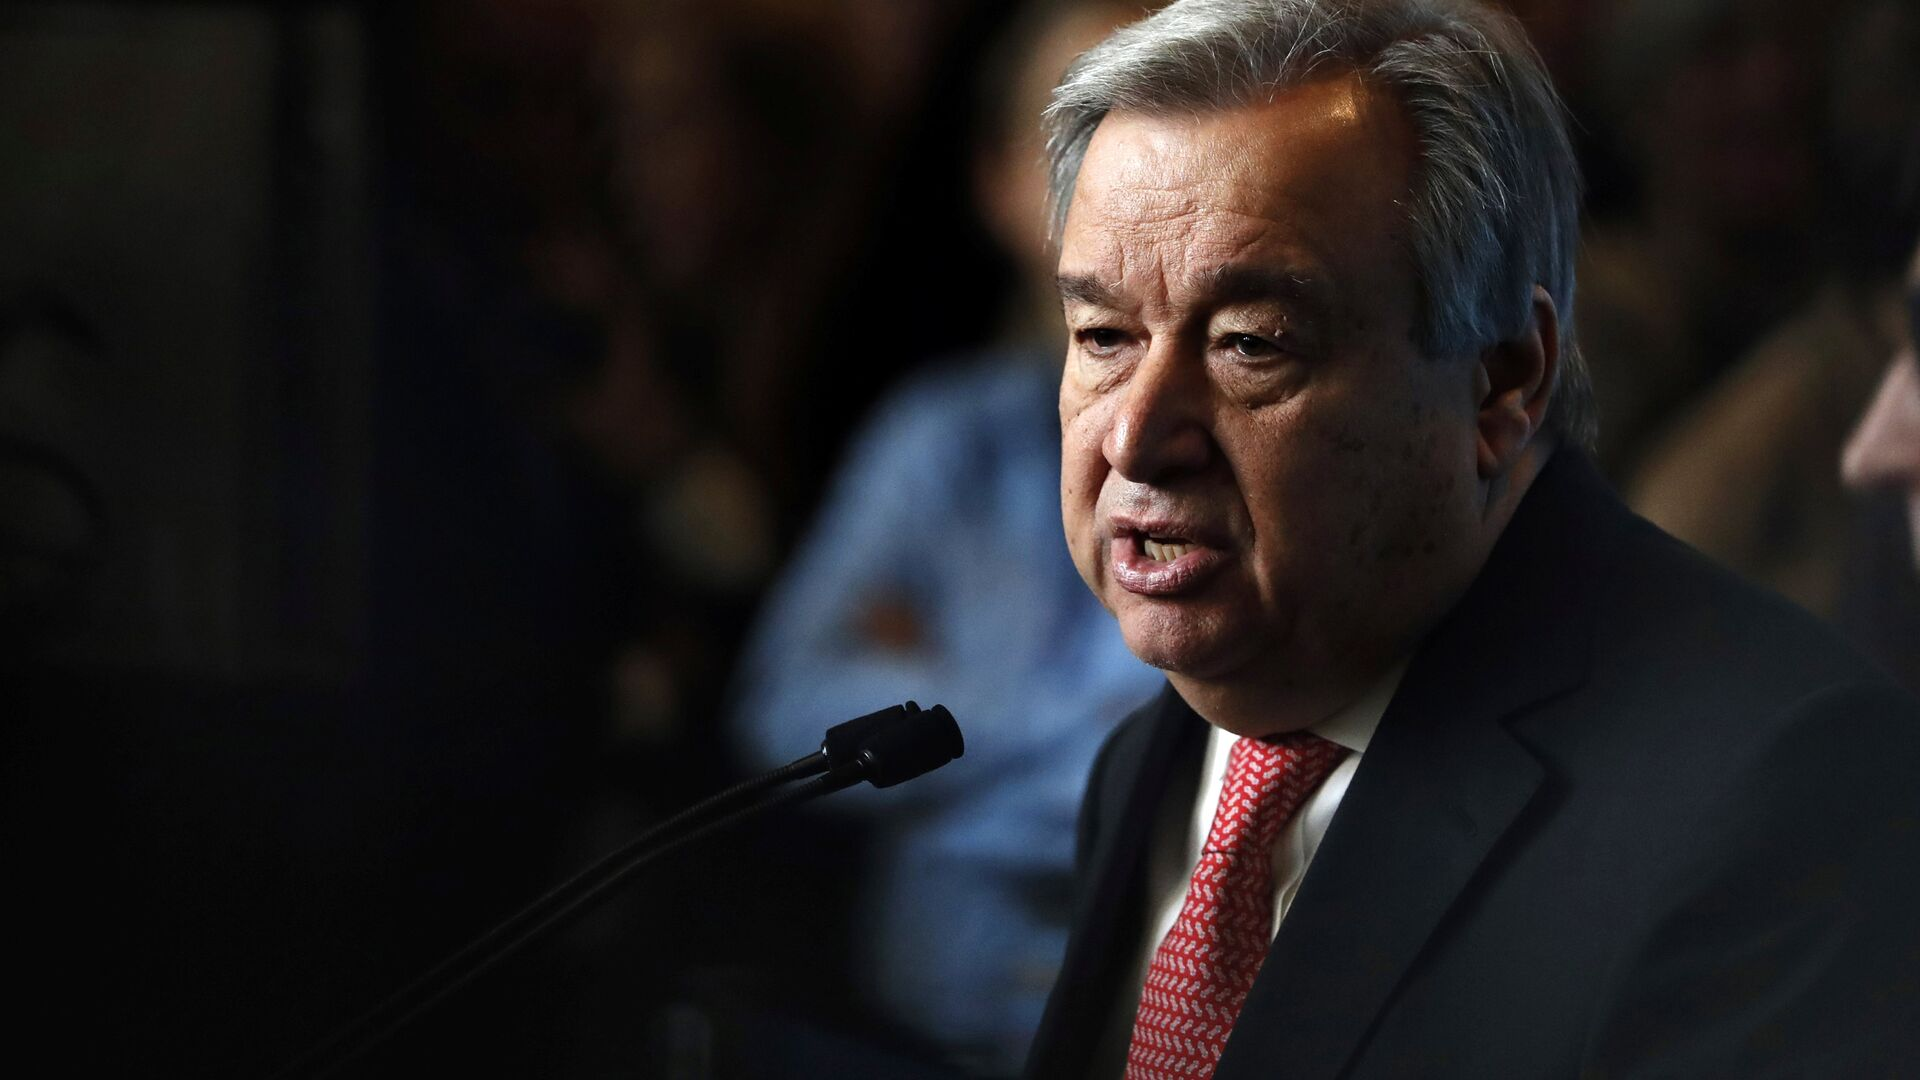 UN Secretary-General-designate Mr. Antonio Guterres of Portugal speaks to members of the media after being sworn in at UN headquarters in New York - Sputnik Mundo, 1920, 10.03.2021